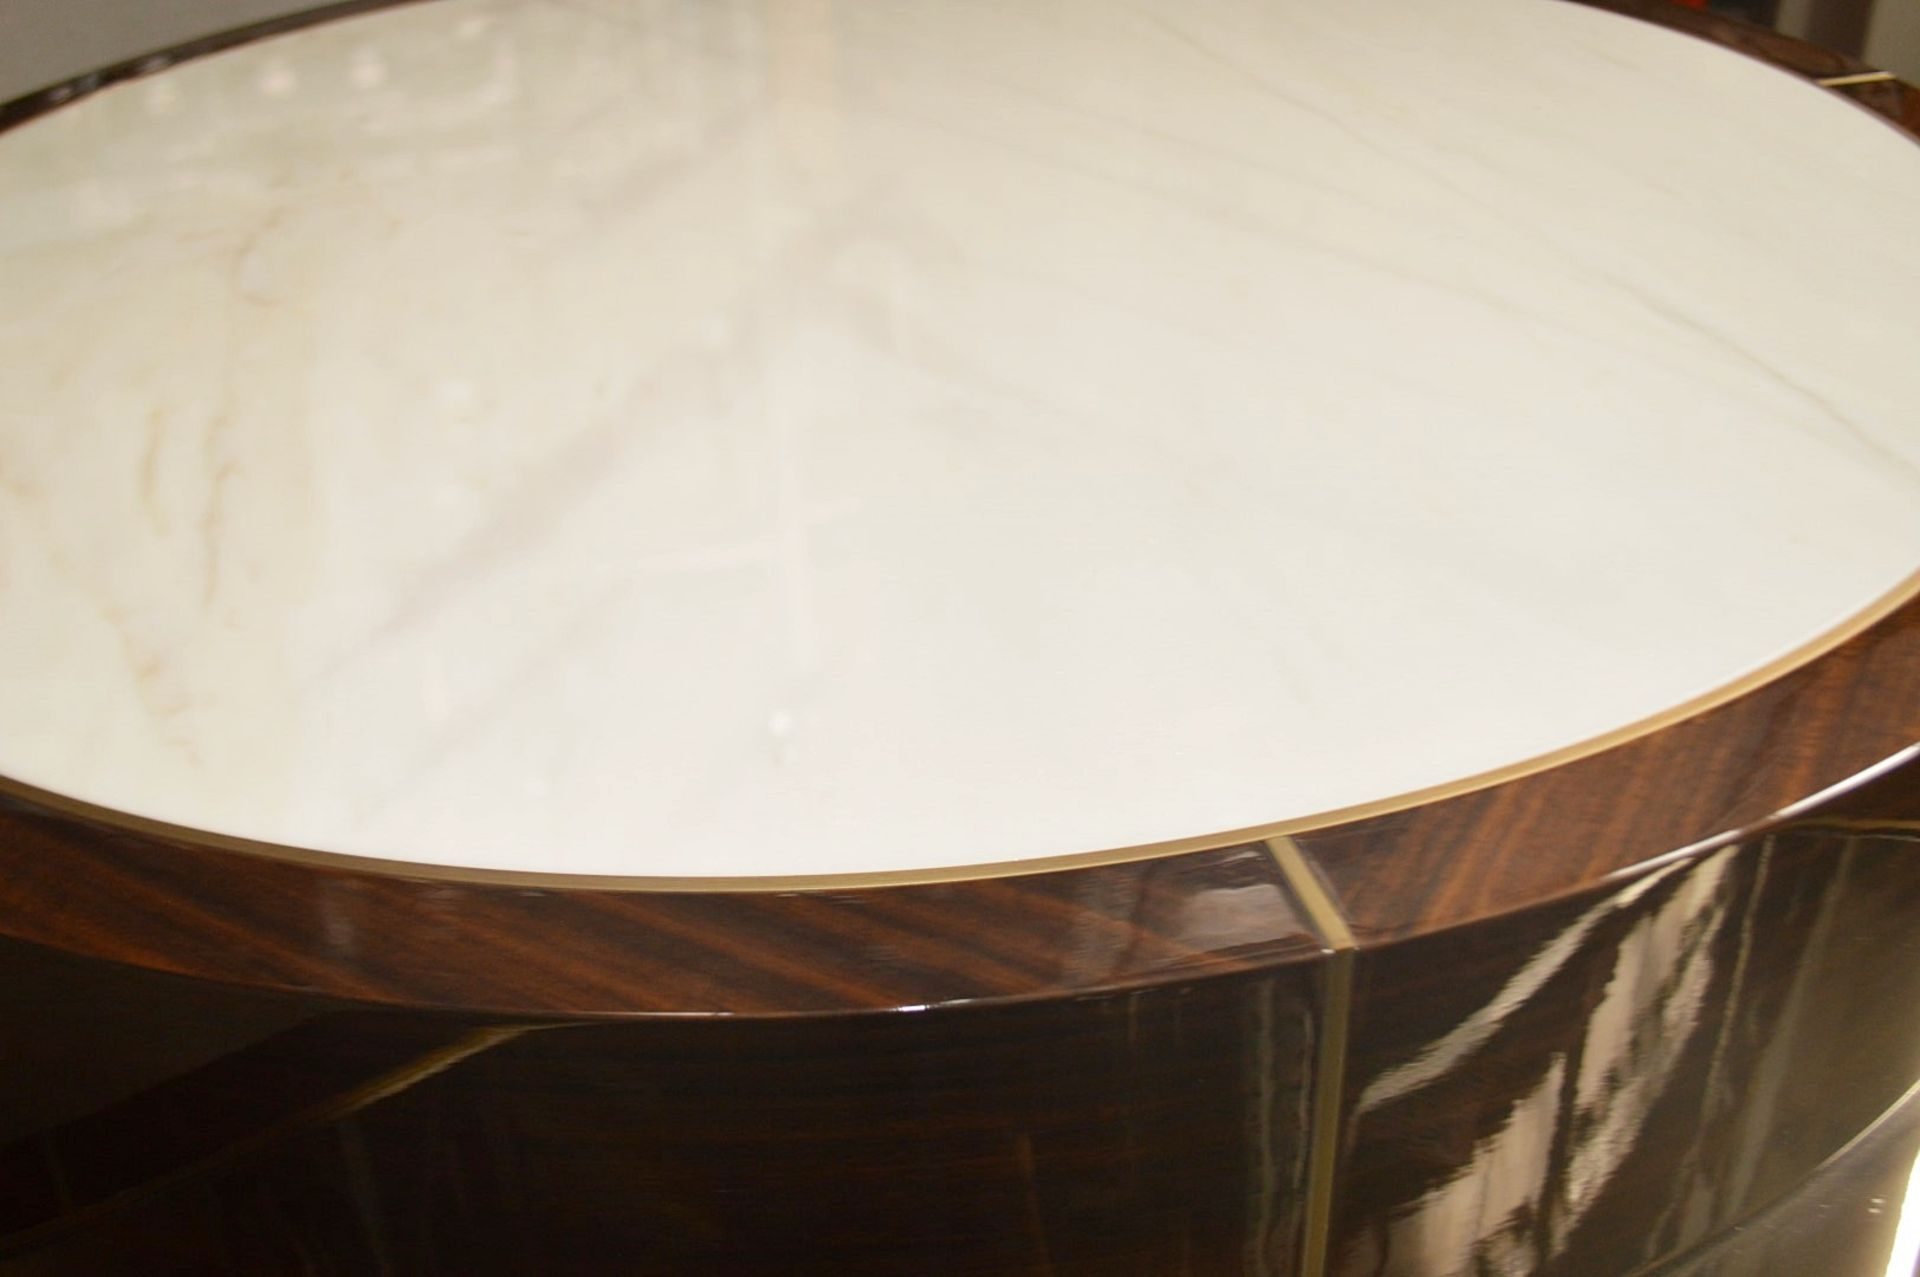 1 x FRATO 'Aarhus' Luxury Coffee Table Topped With Marble With High Gloss Finish - RRP £6,611 - Image 2 of 9